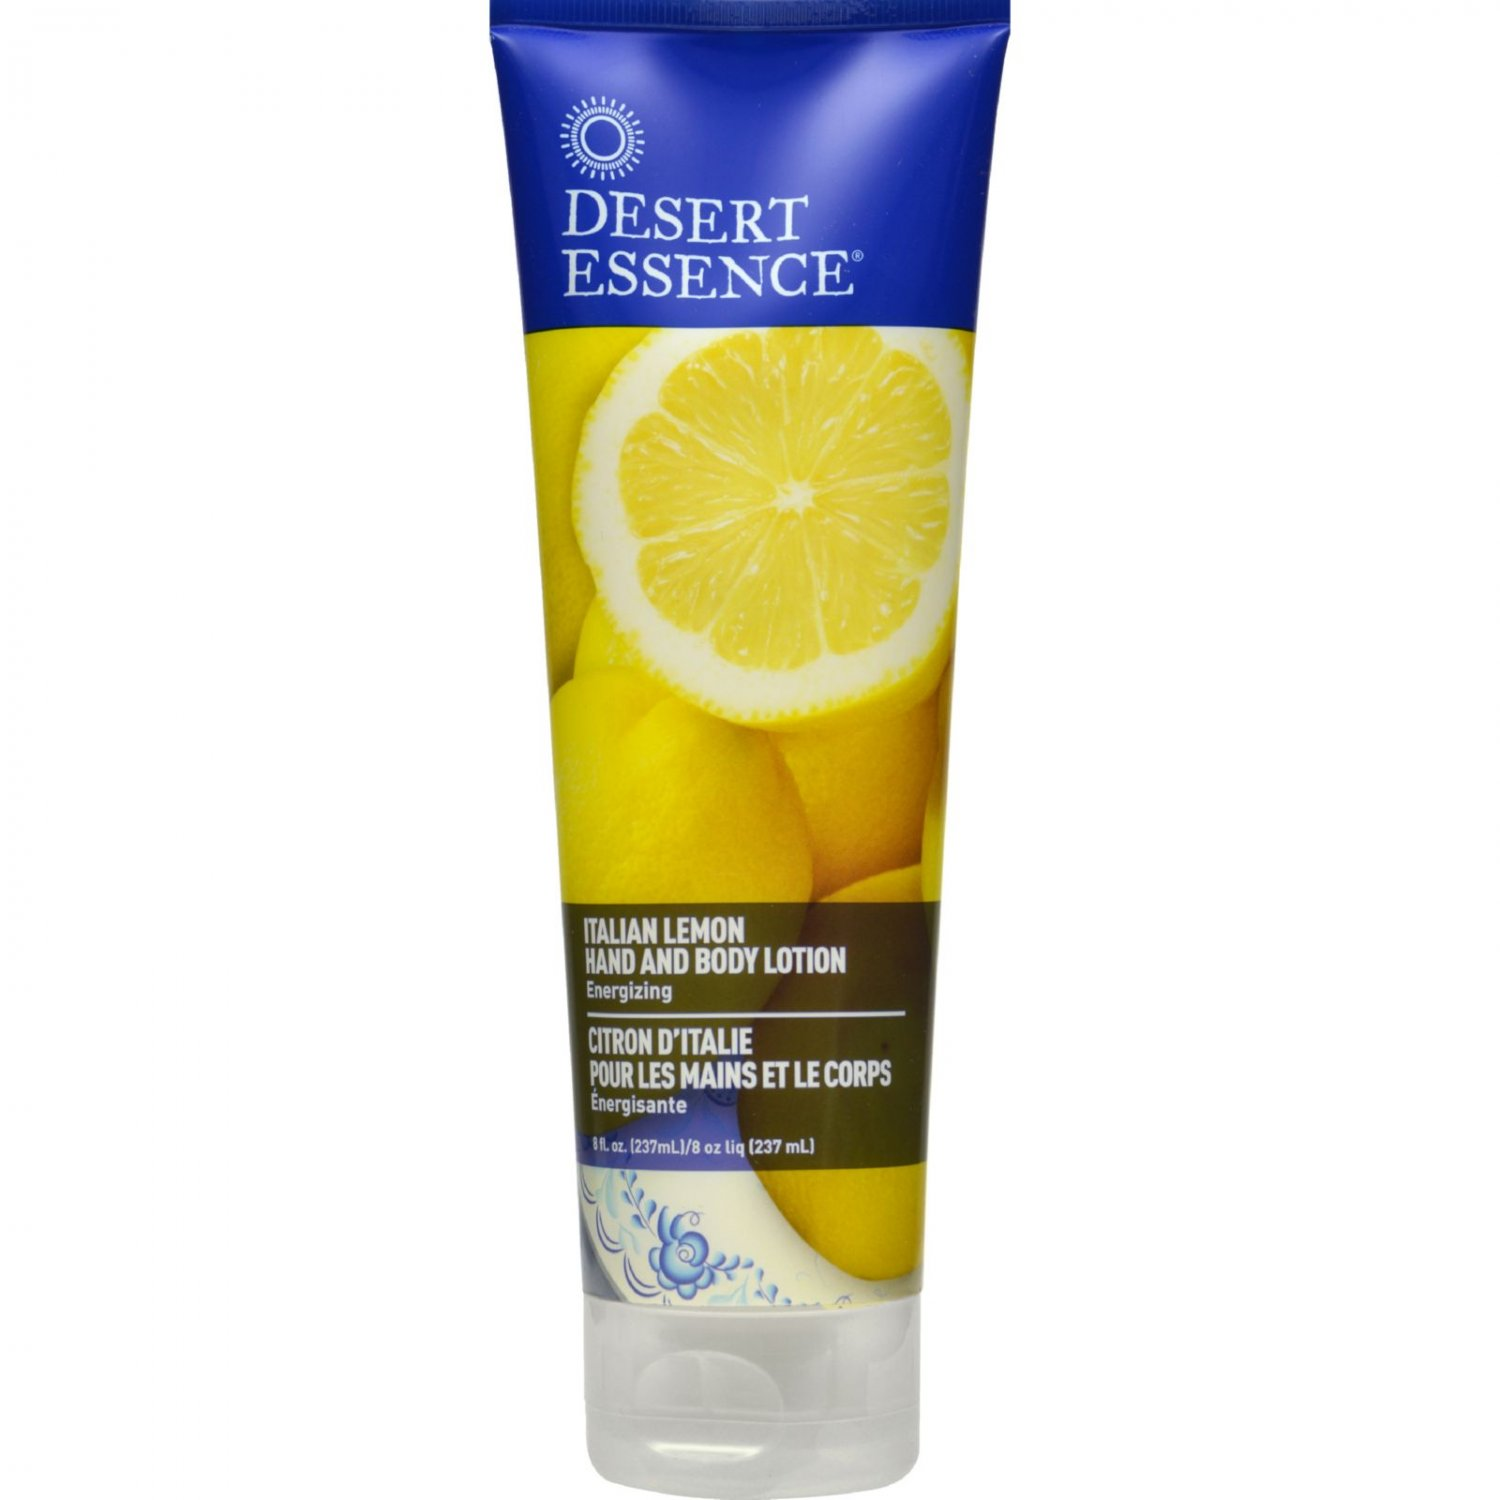 Desert Essence Hand and Body Lotion - Italian Lemon - 8 fl oz